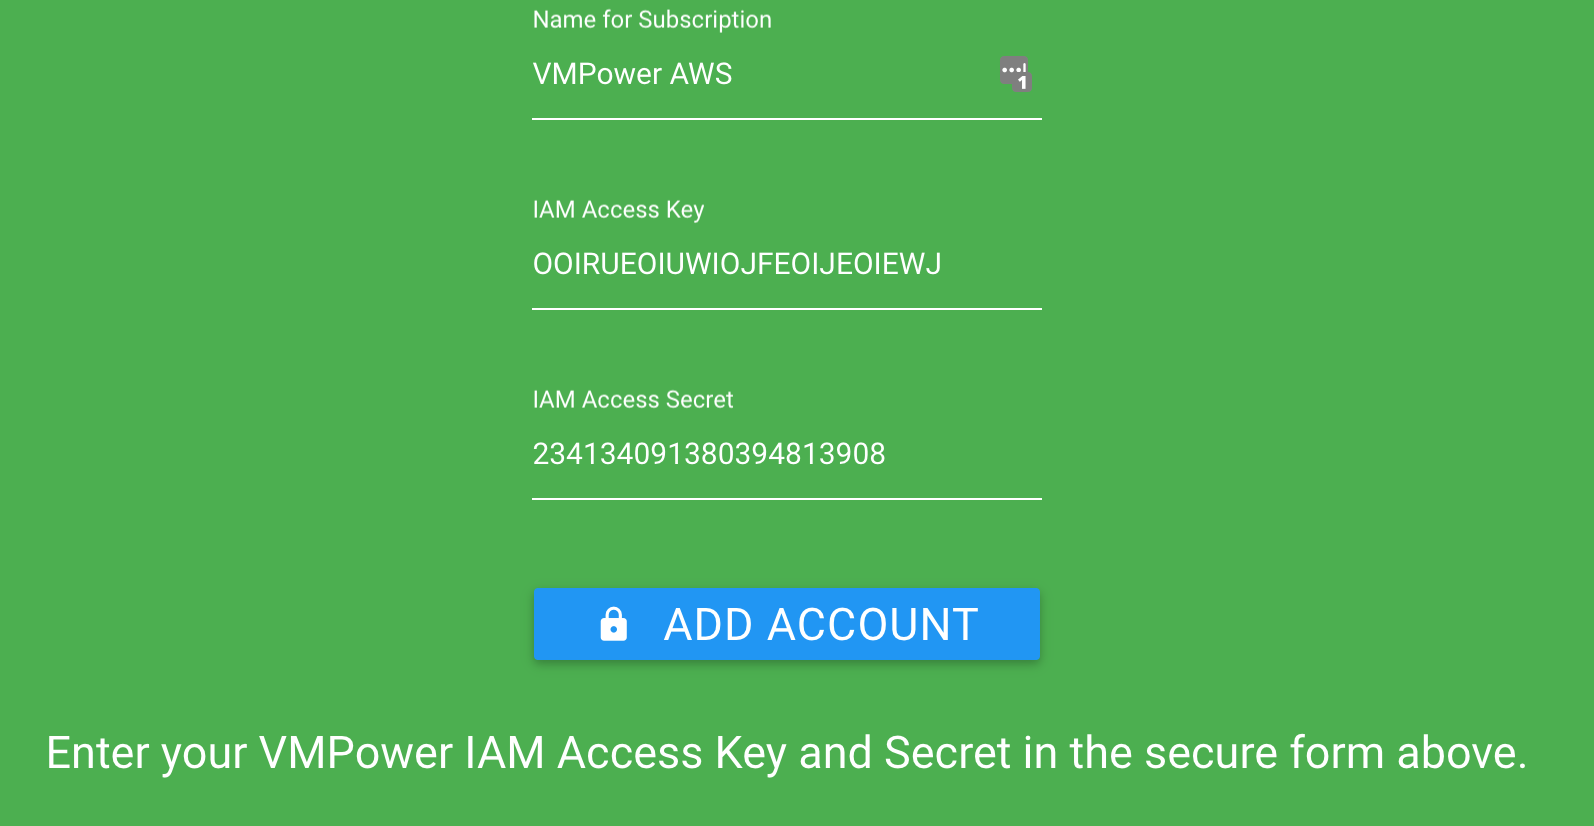 AWS Subscription Connection Prompt